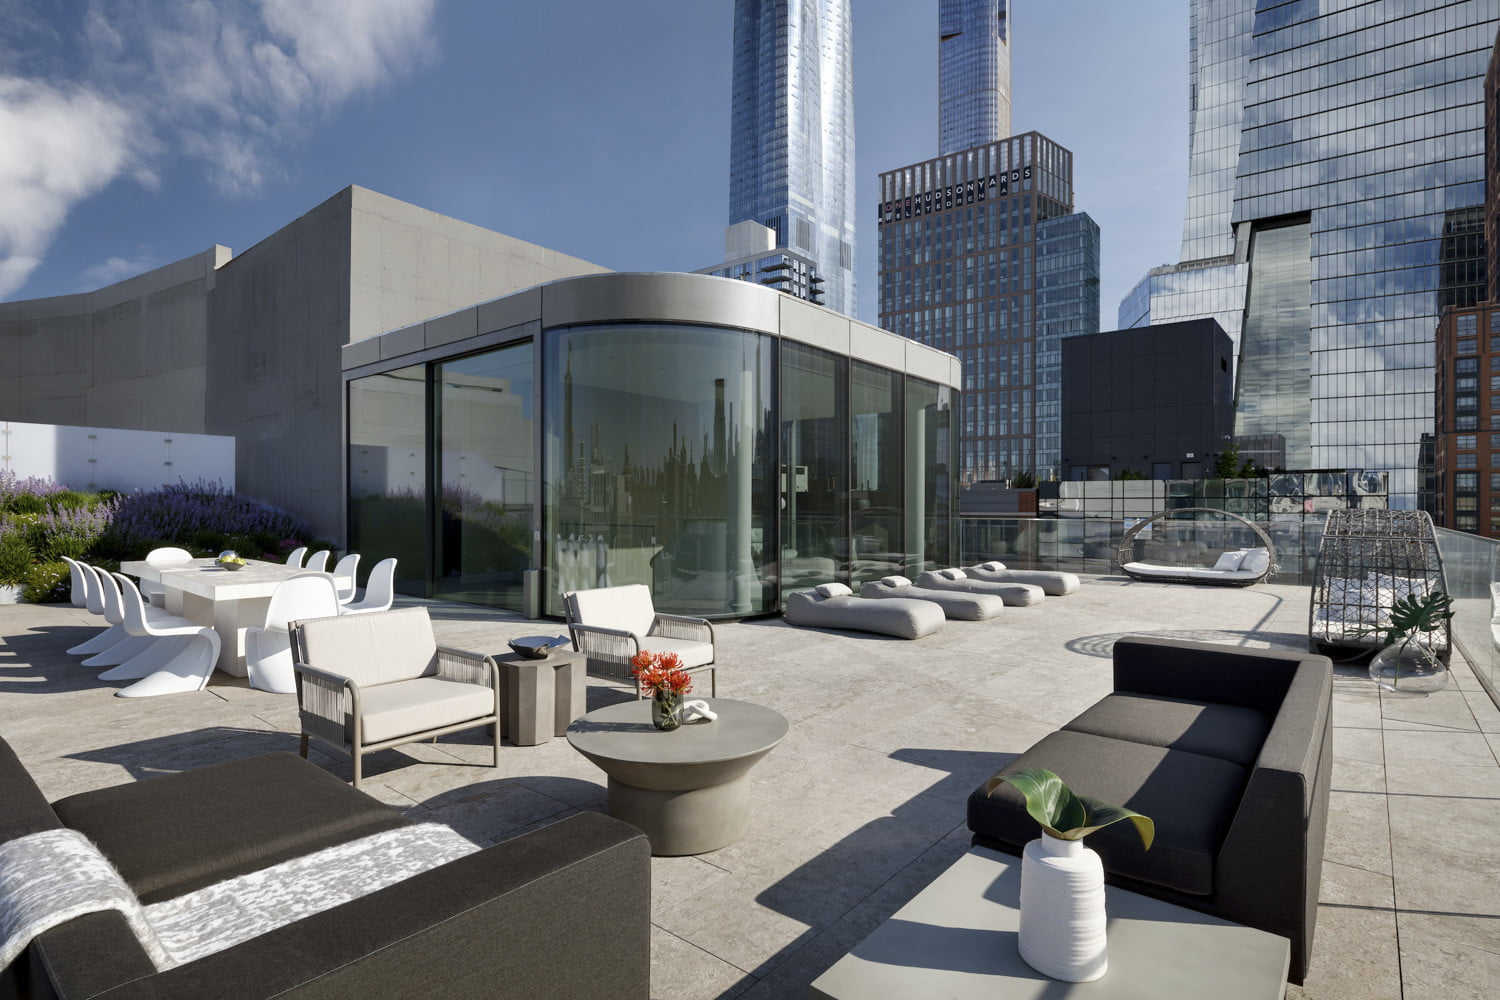 zaha hadid manhattan penthouse for sale 2019 05 22 colinmiller 520w28 1 13